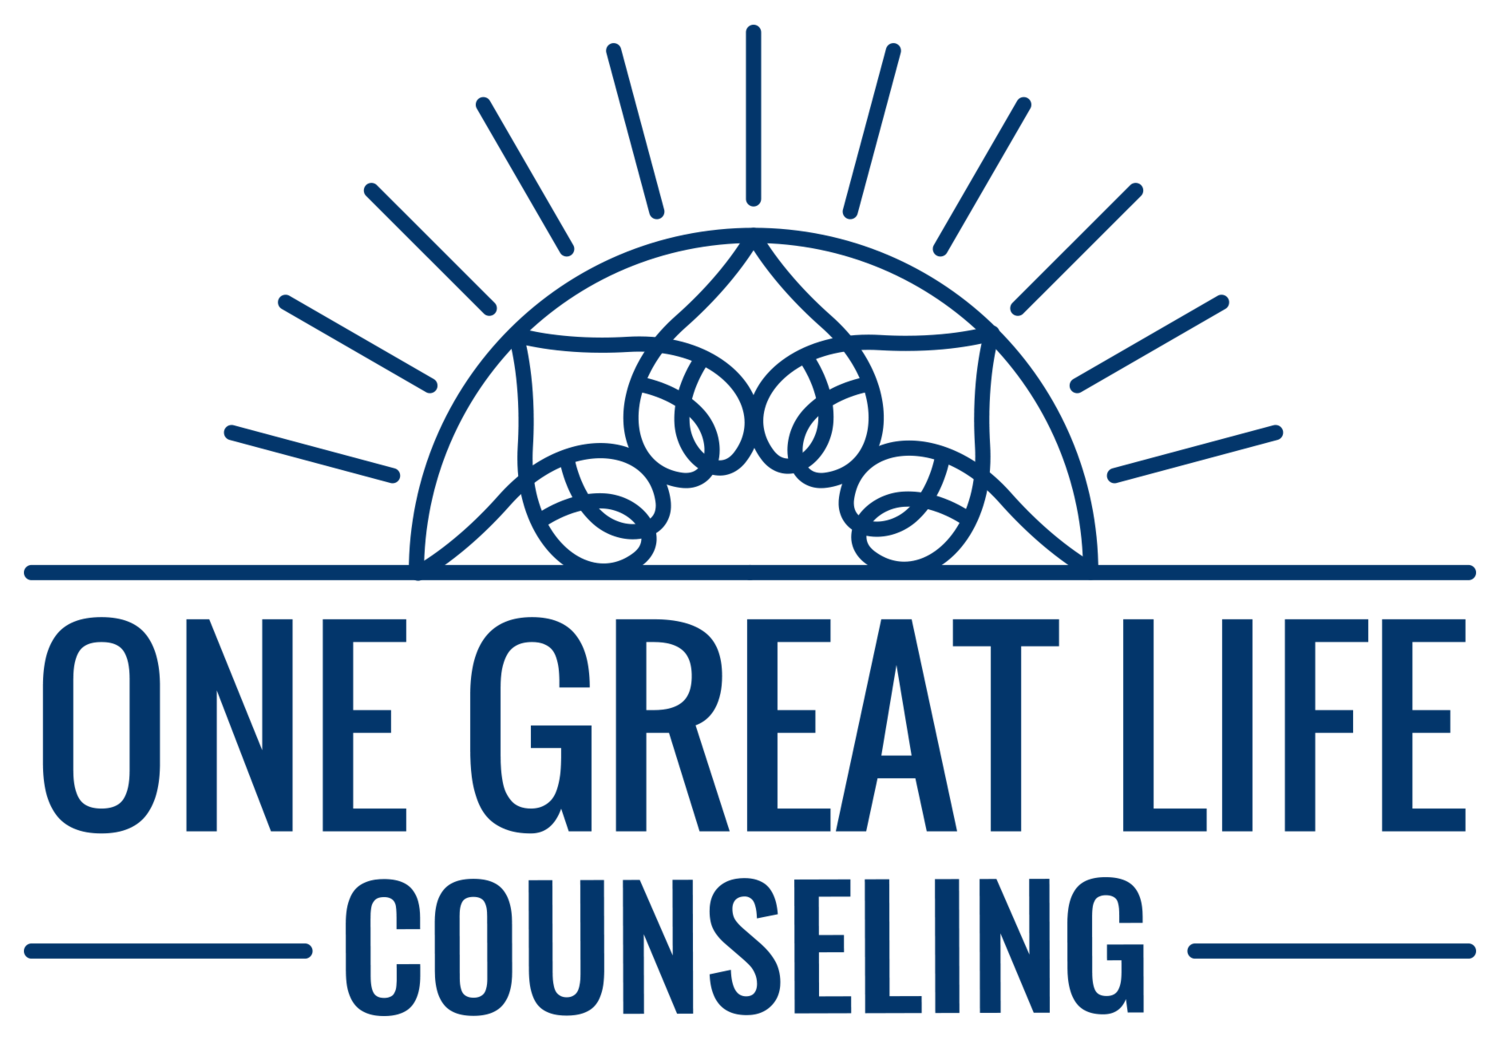 One Great Life Counseling | St. Paul, MN